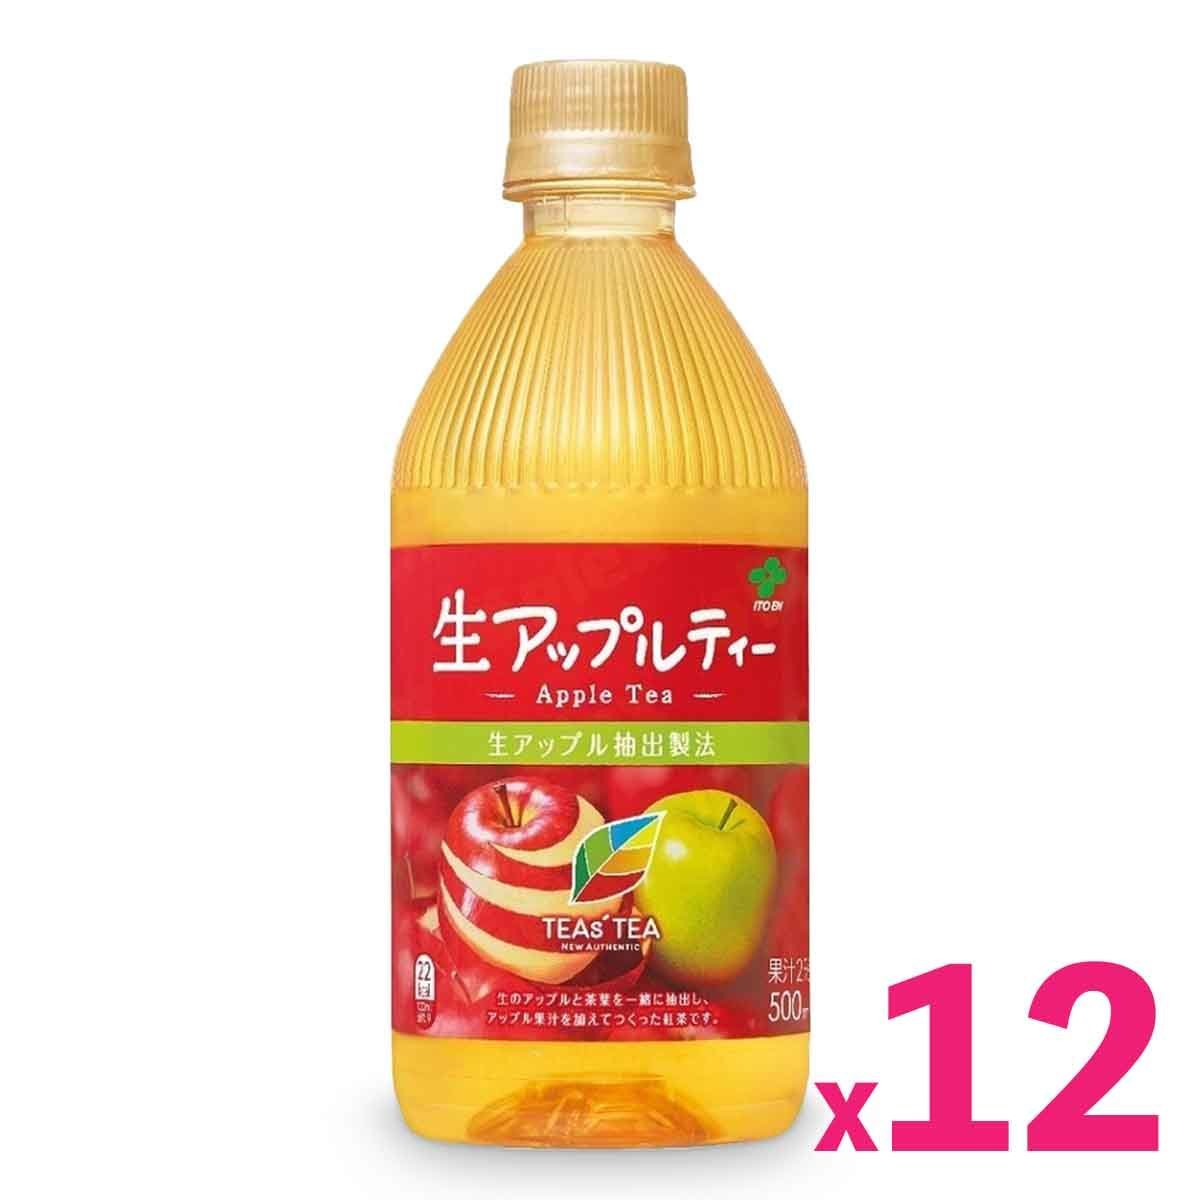 Japan Authentic Apple Tea (500ml) x 12bottles